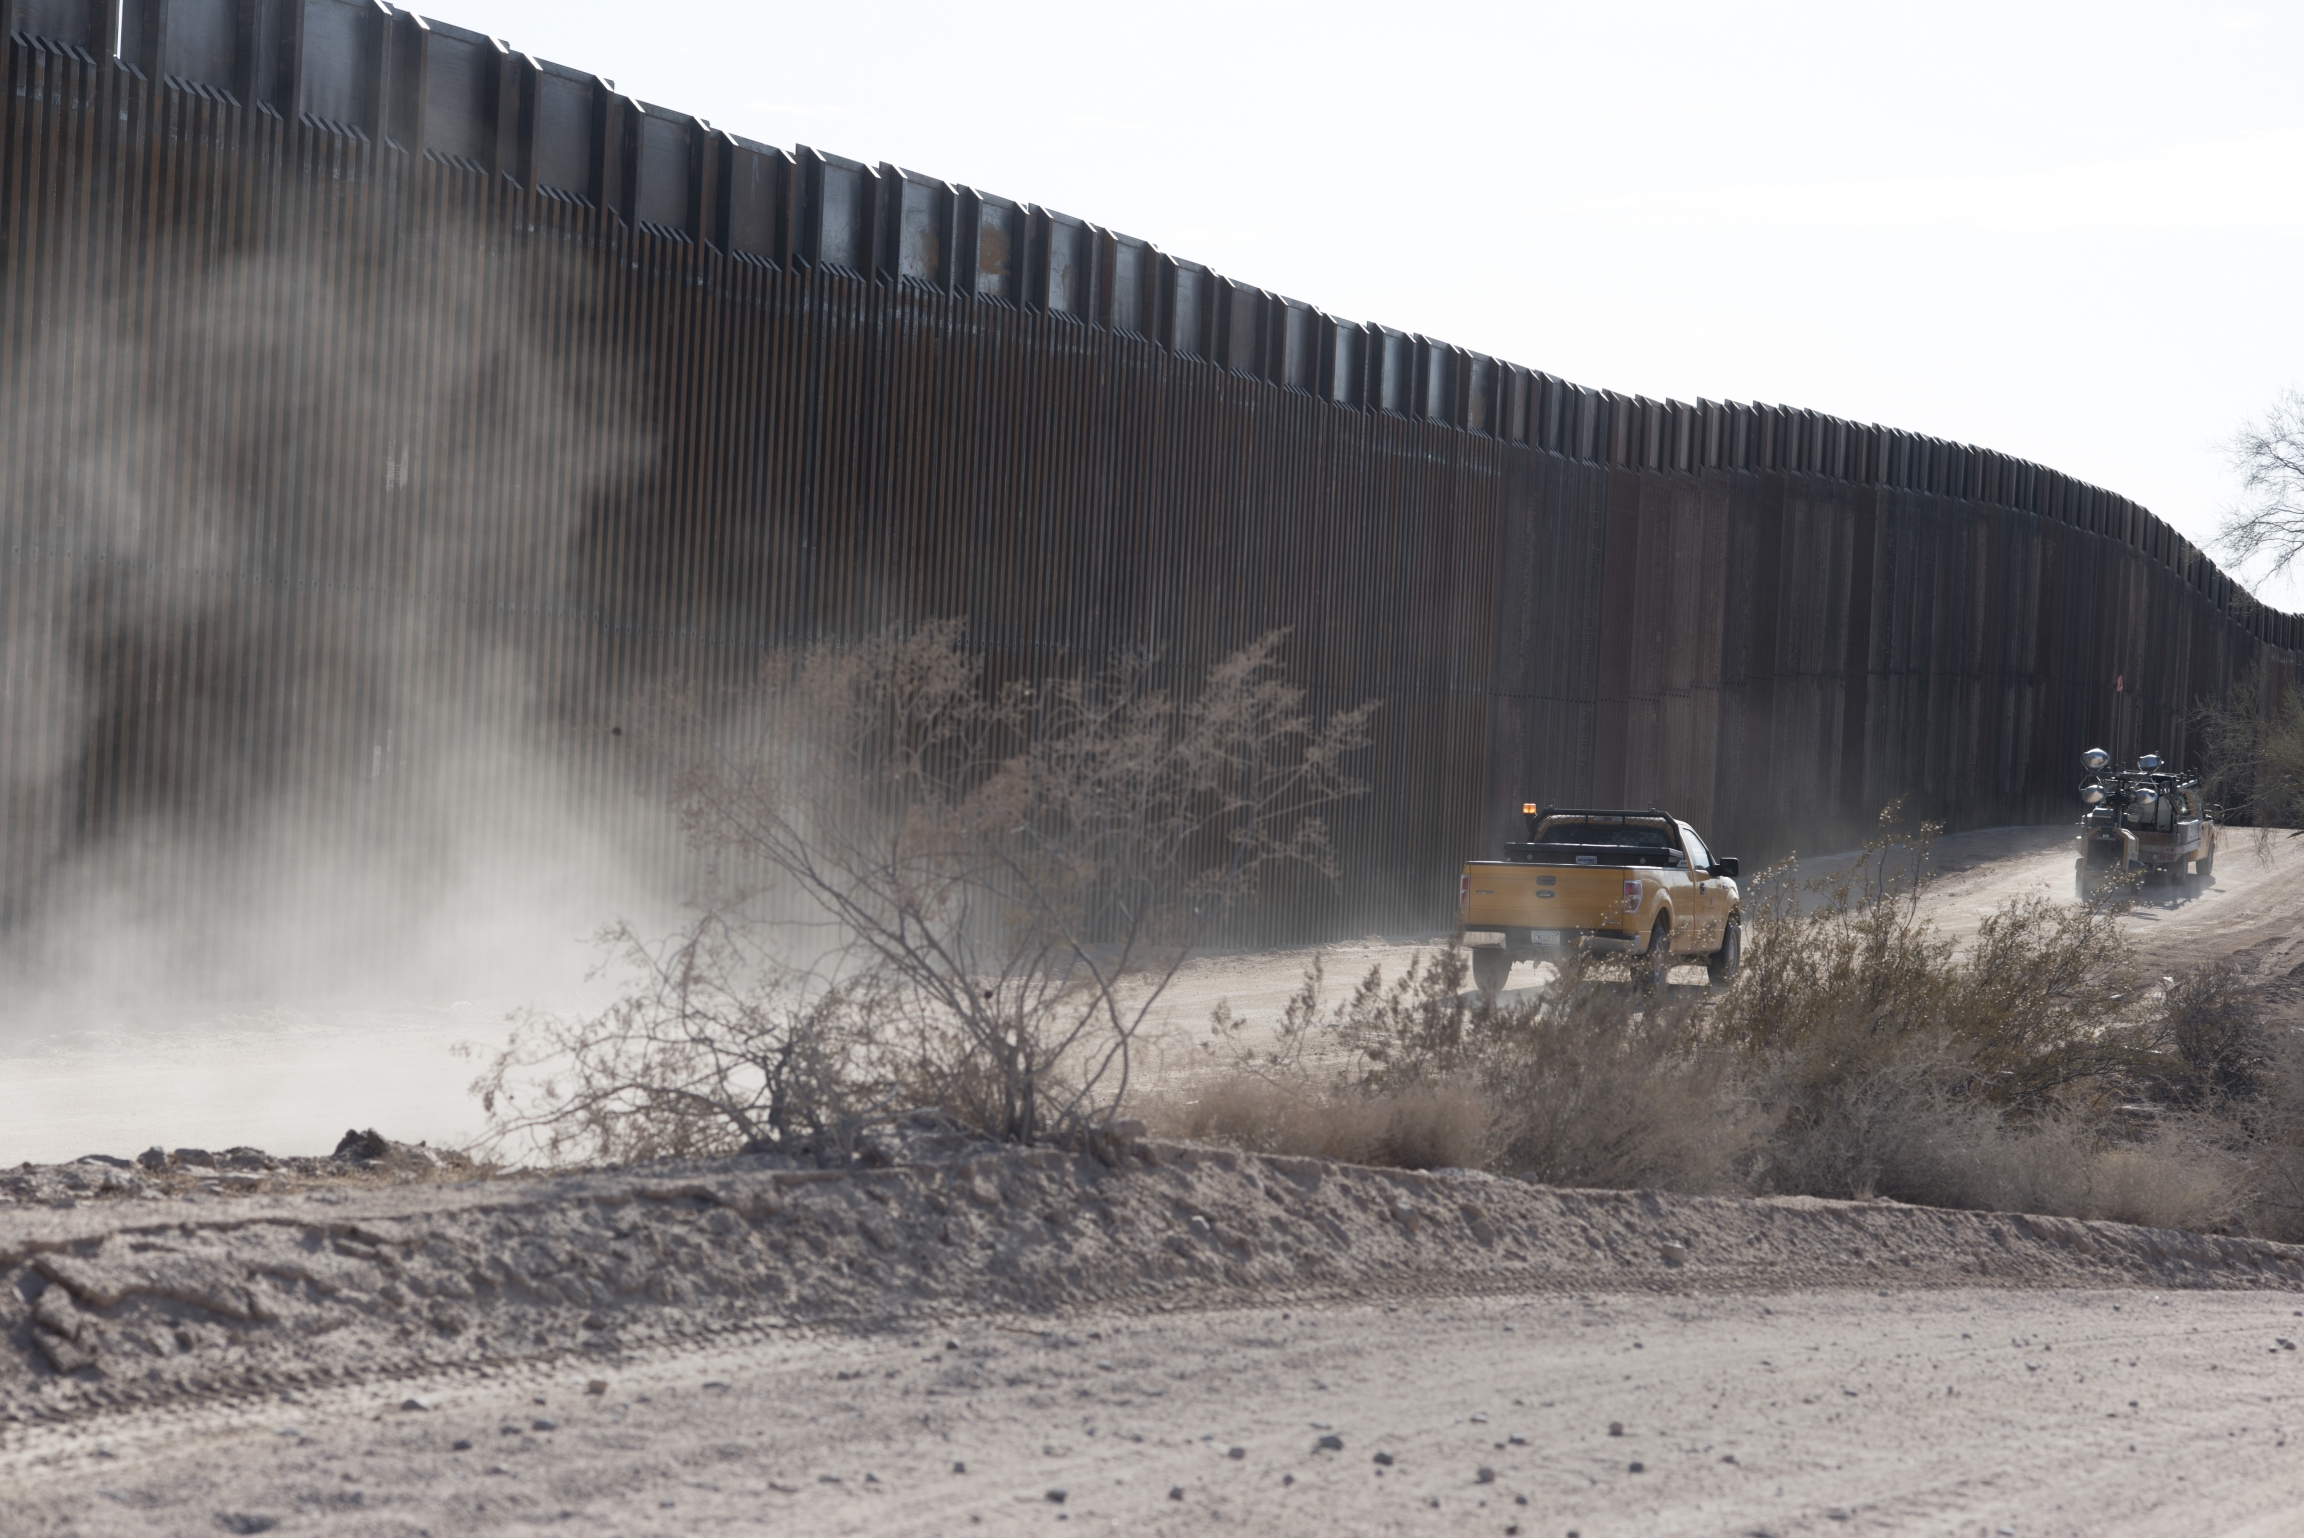 The Trump administration has waived dozens of environmental and cultural protection laws to push the border wall project through.